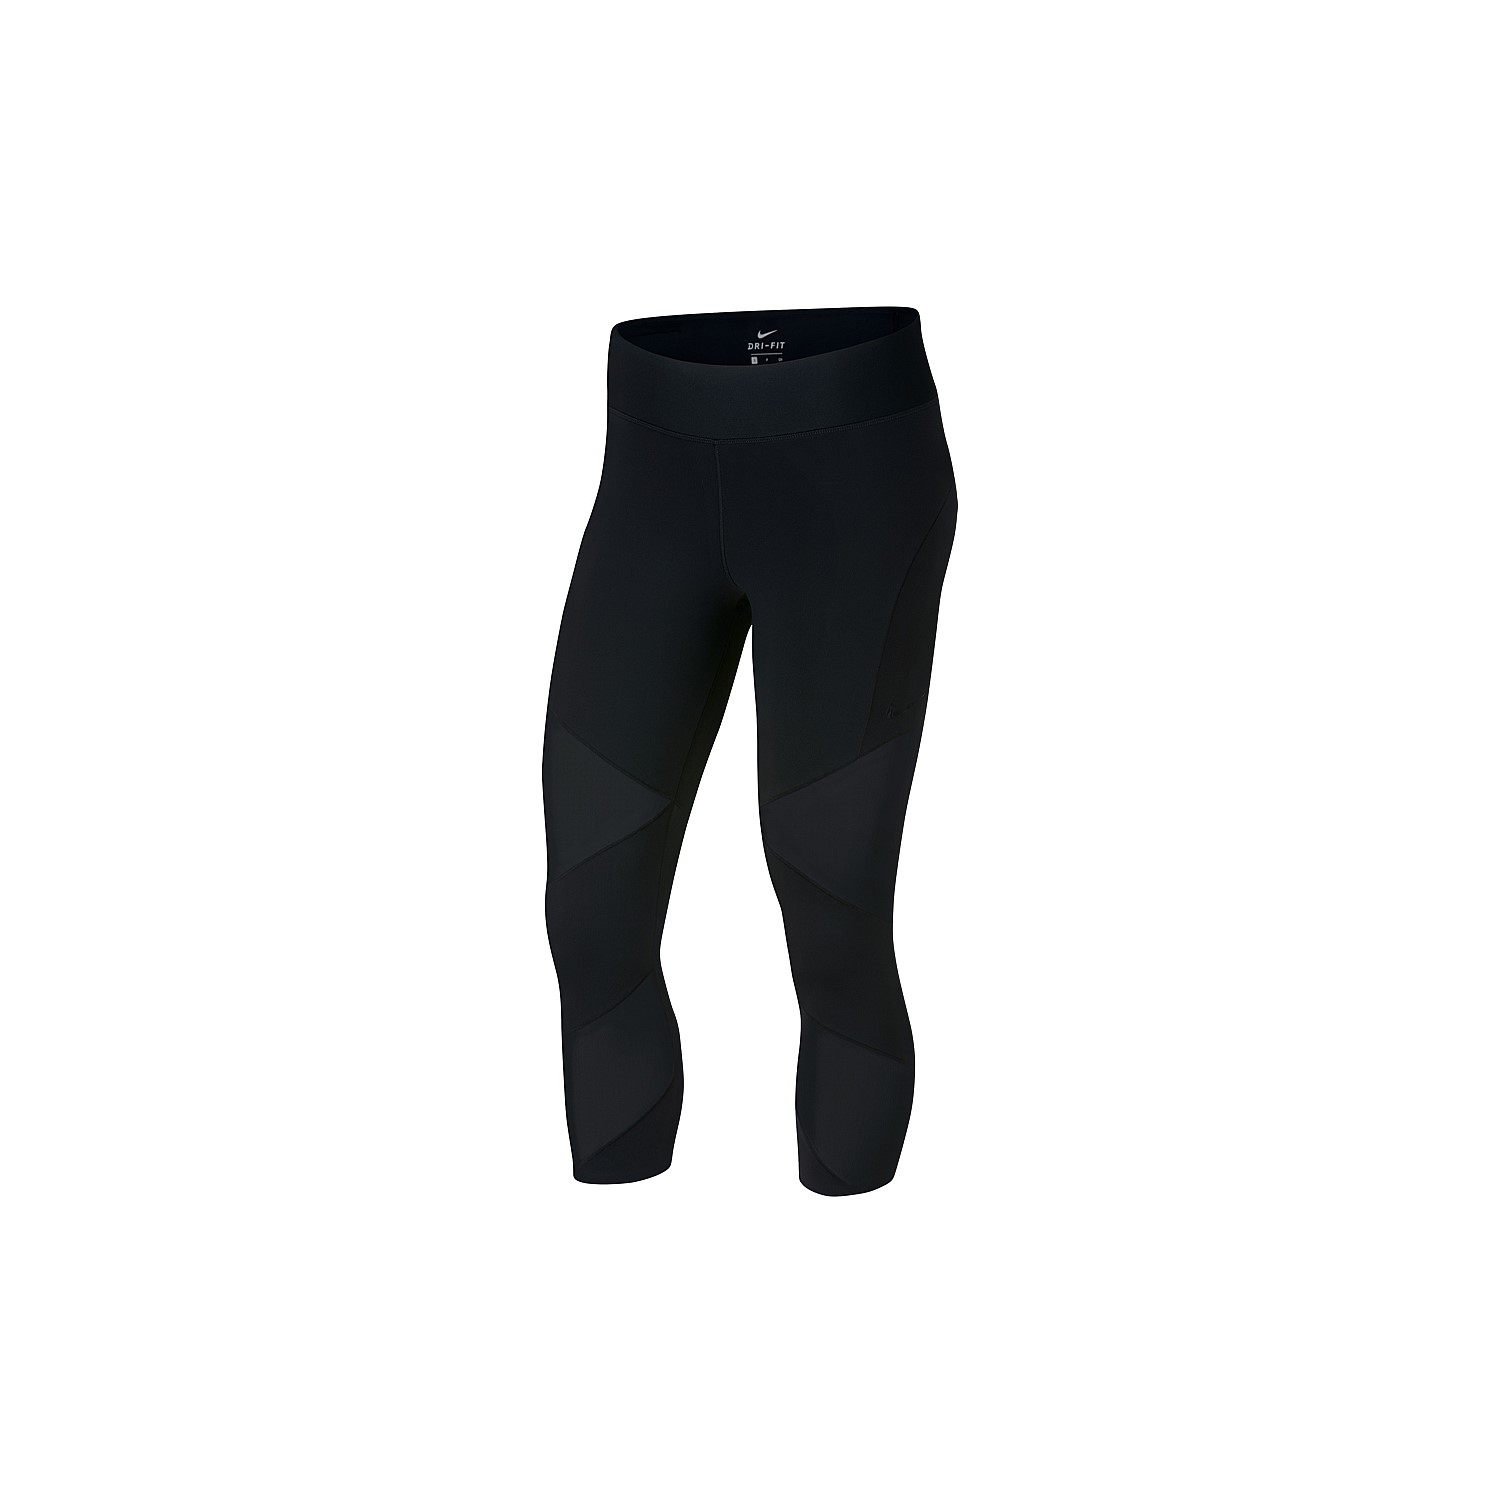 9fc9c230be9f2 Tights - Fly Lux Crop